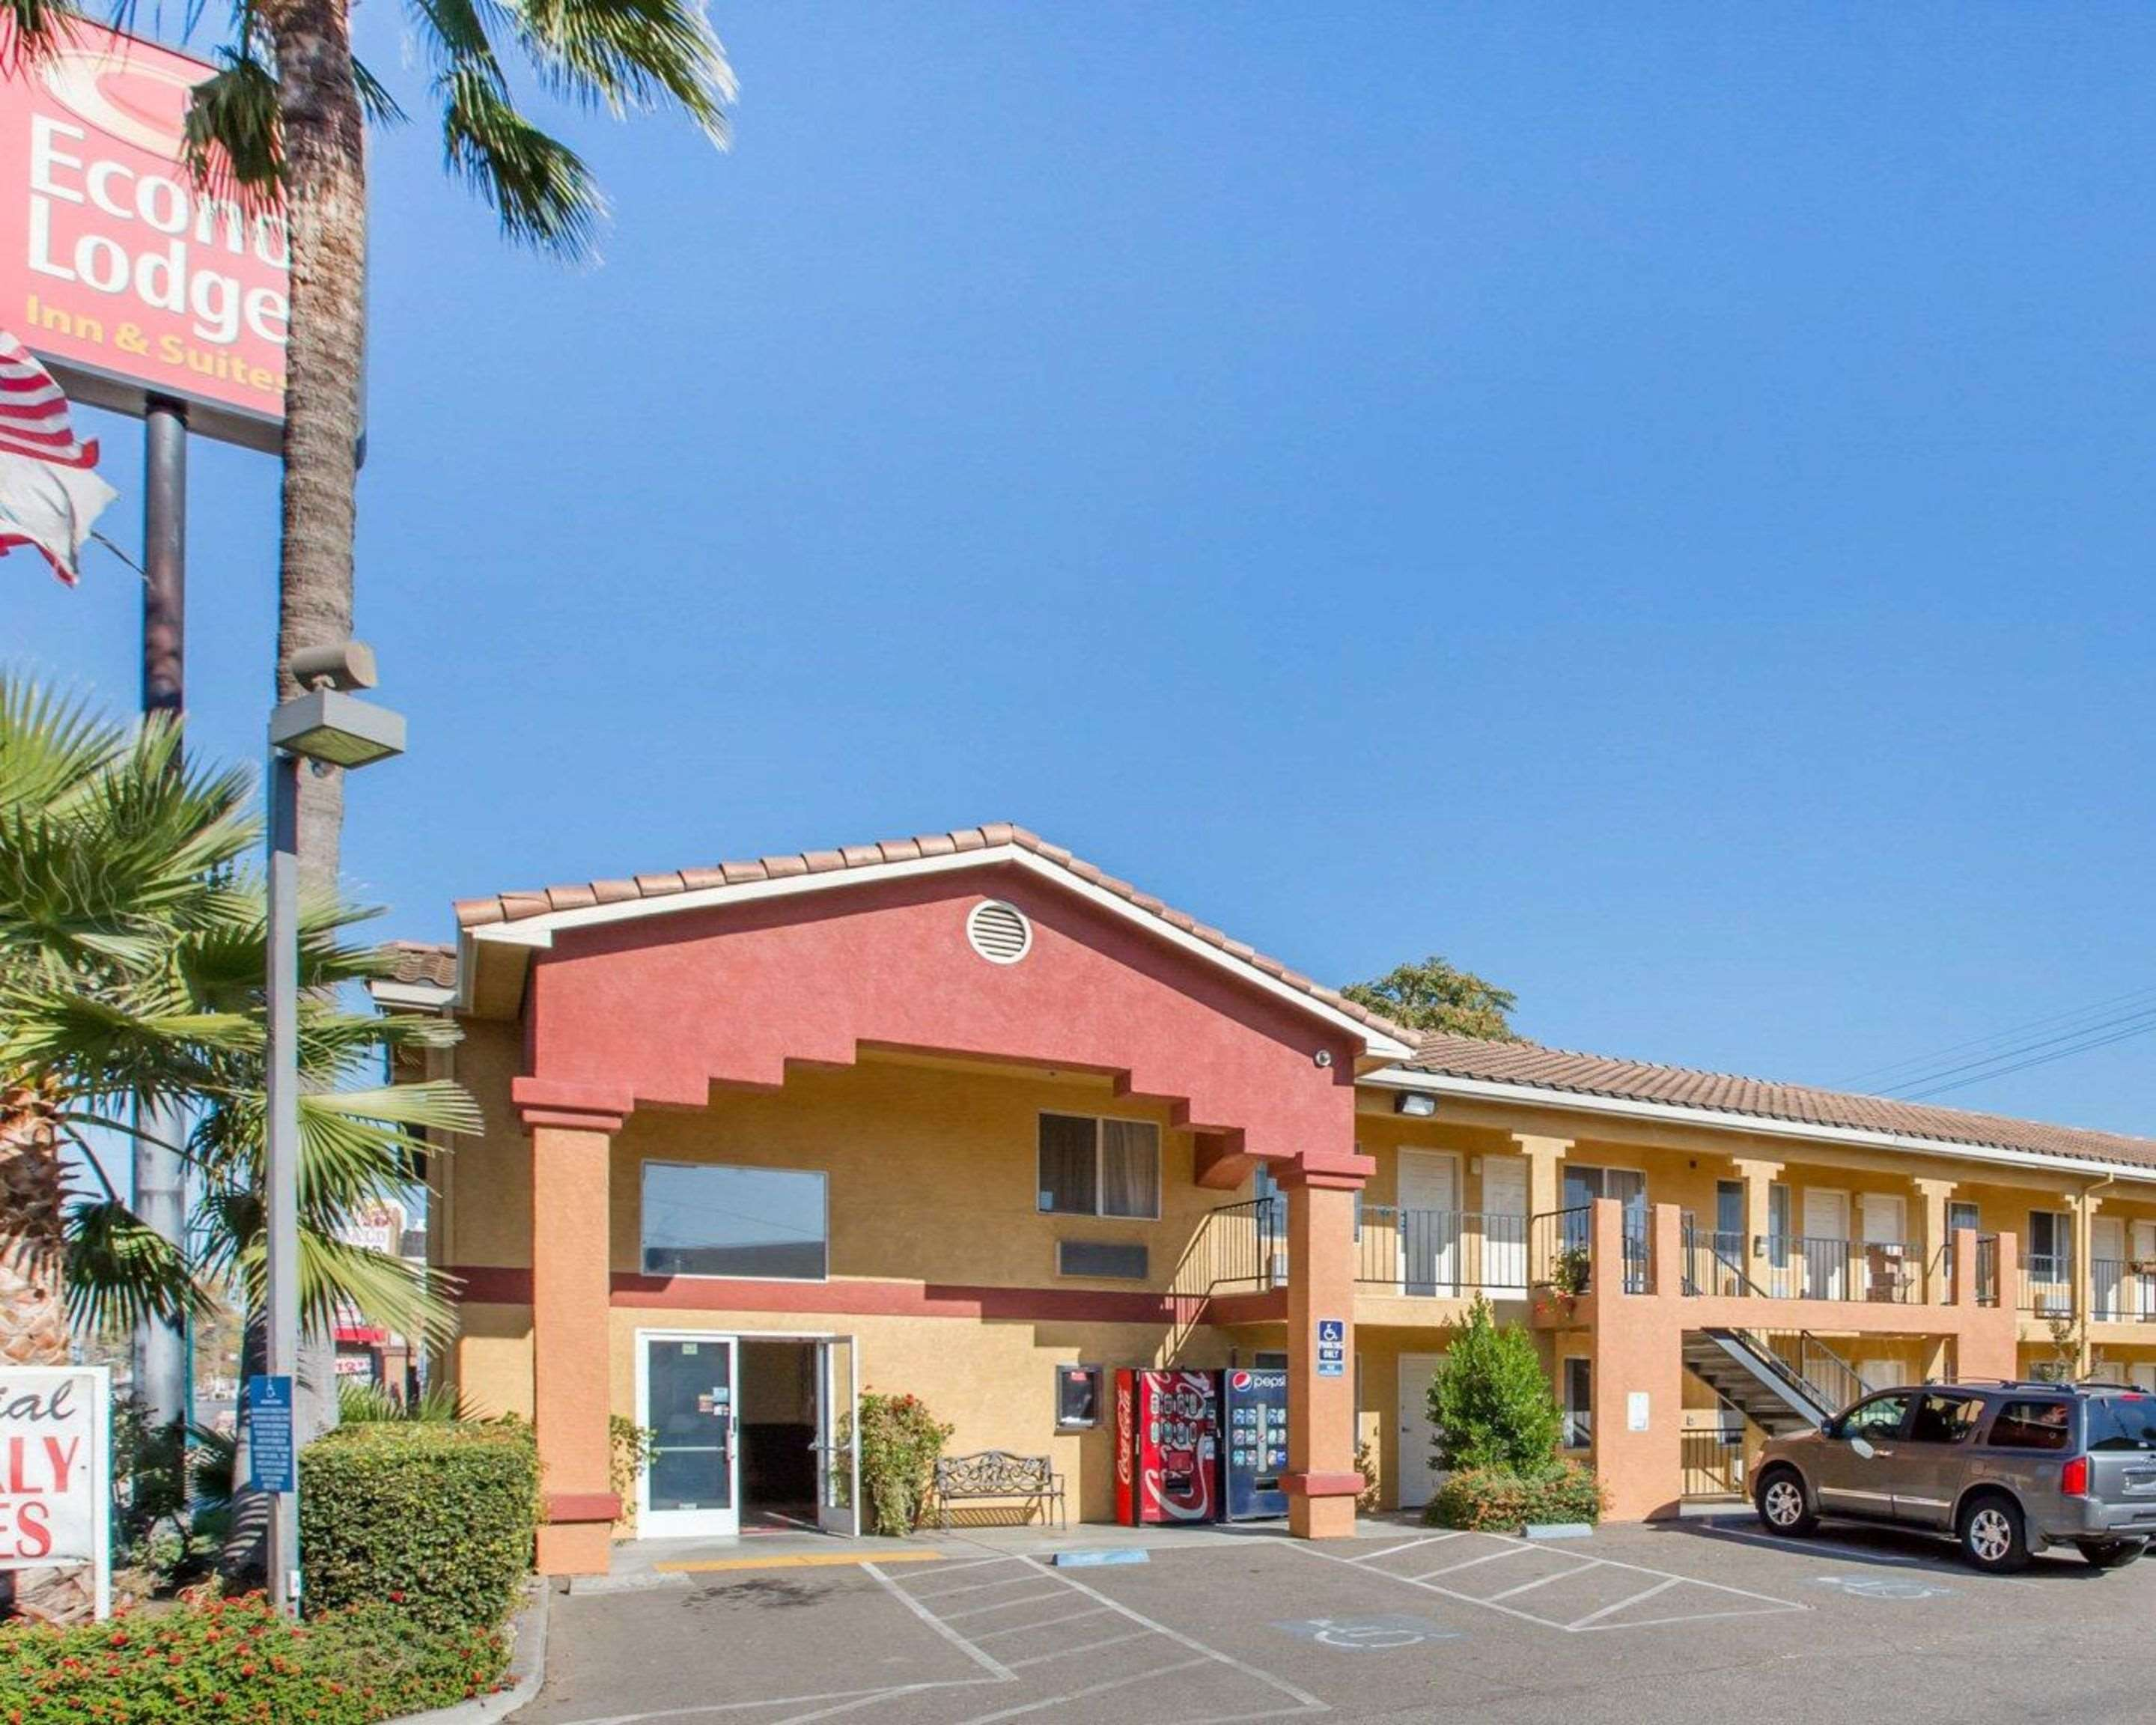 Econo Lodge Inn & Suites Lodi - Wine Country Area in Lodi, CA, photo #4